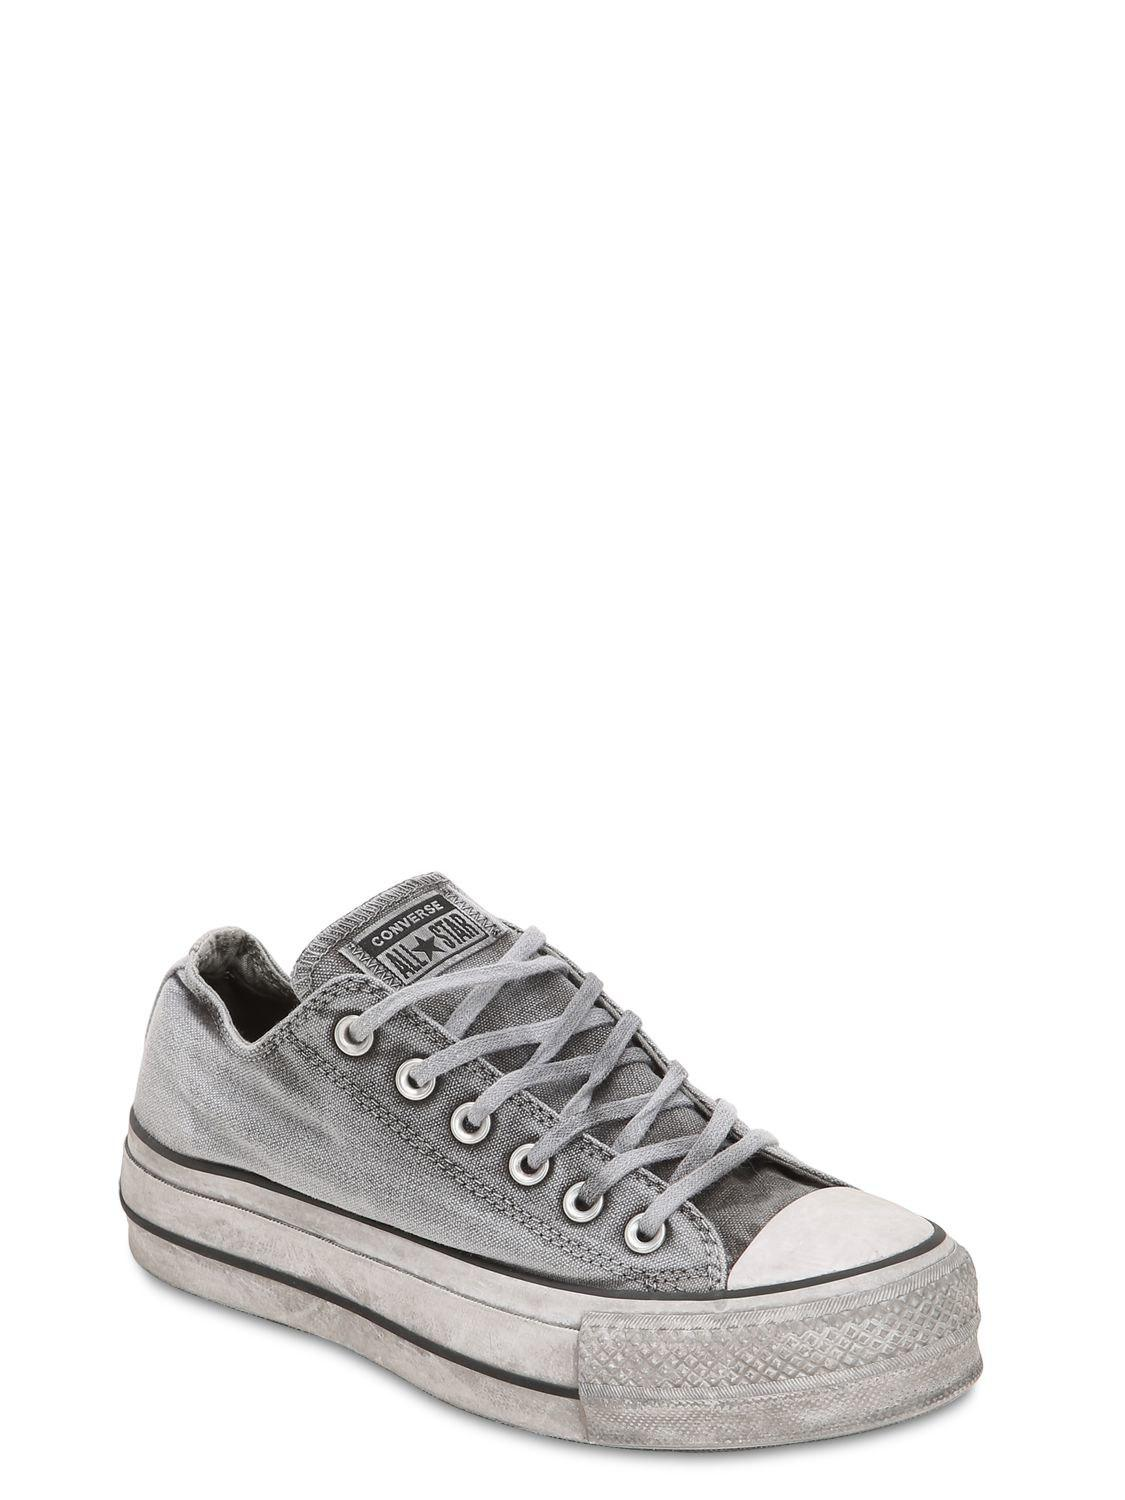 6bf836f18de2f Converse Chuck Taylor Ox Lift Canvas Sneakers in Gray - Lyst